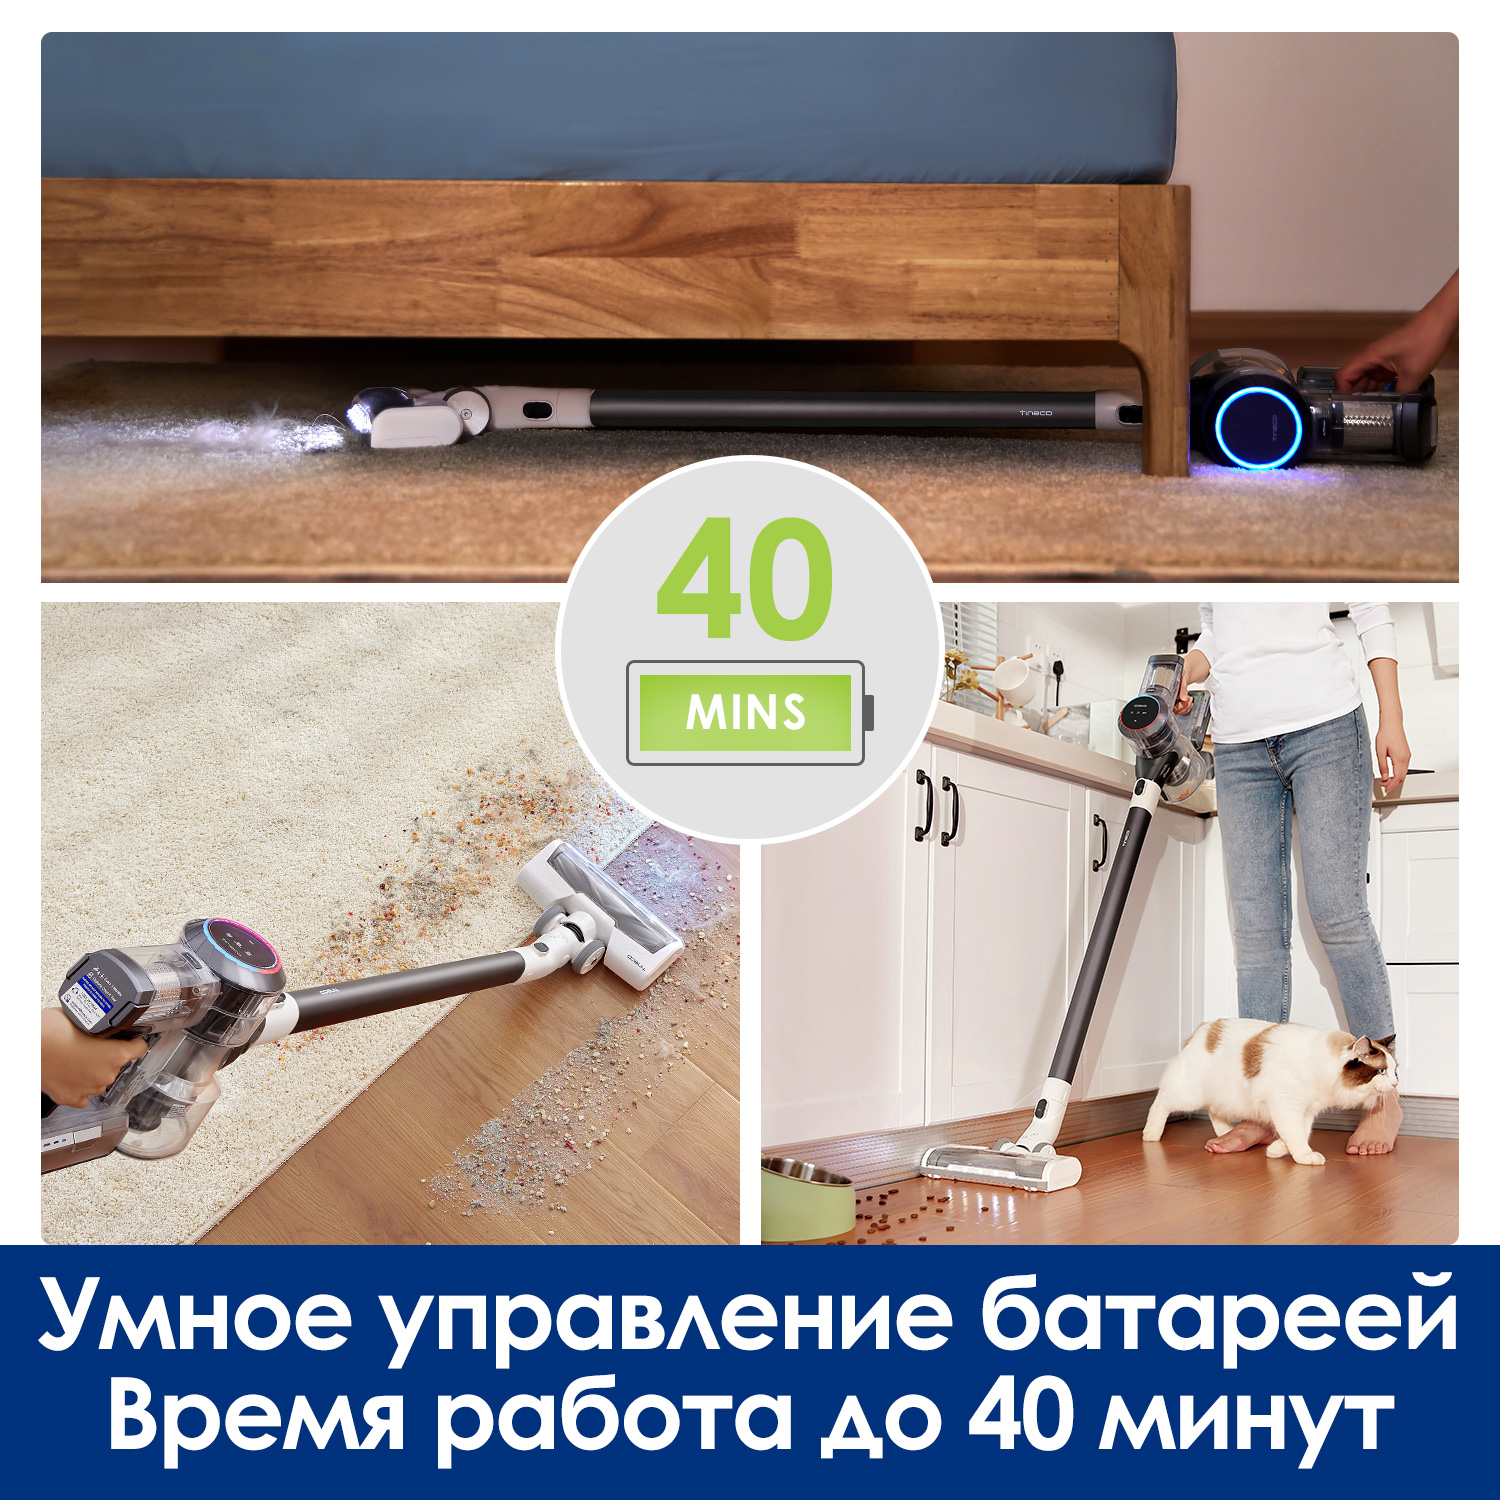 Tineco Pure One S11 Spartan smart wireless vacuum cleaner manual automatic suction adjustment for home.